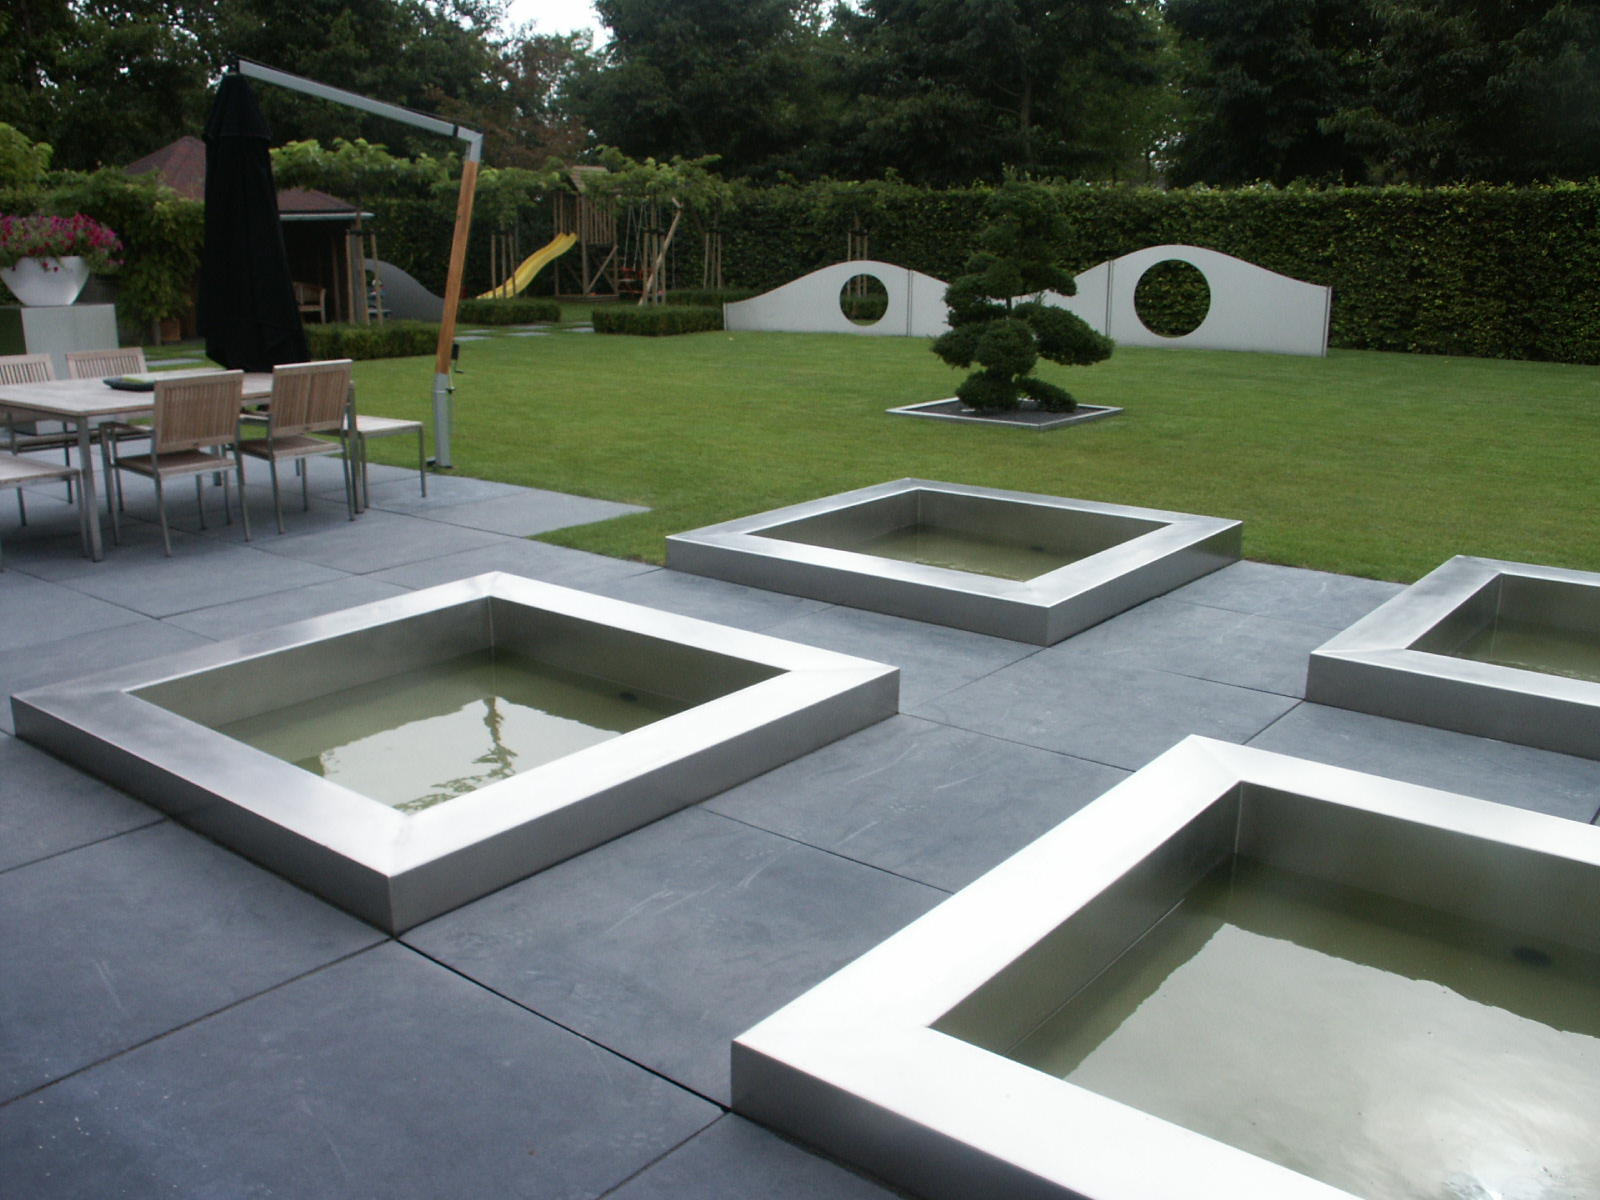 Rvs design tuin gardinox bv for Tuin en design